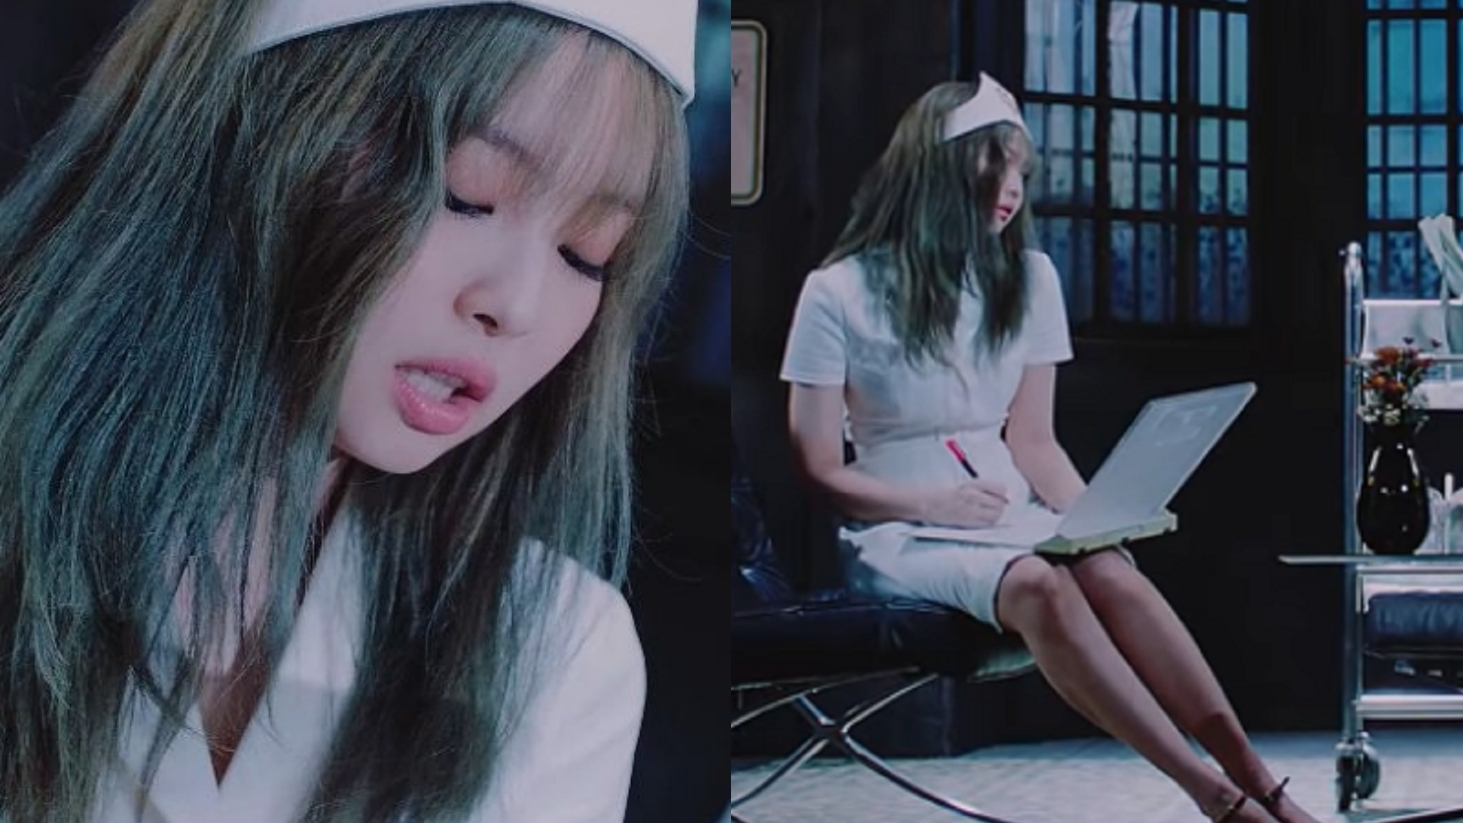 Causing Controversy, YG Apologizes and Will Delete Nurse Scene of BLACKPINK's Jennie in 'Lovesick Girls' MV